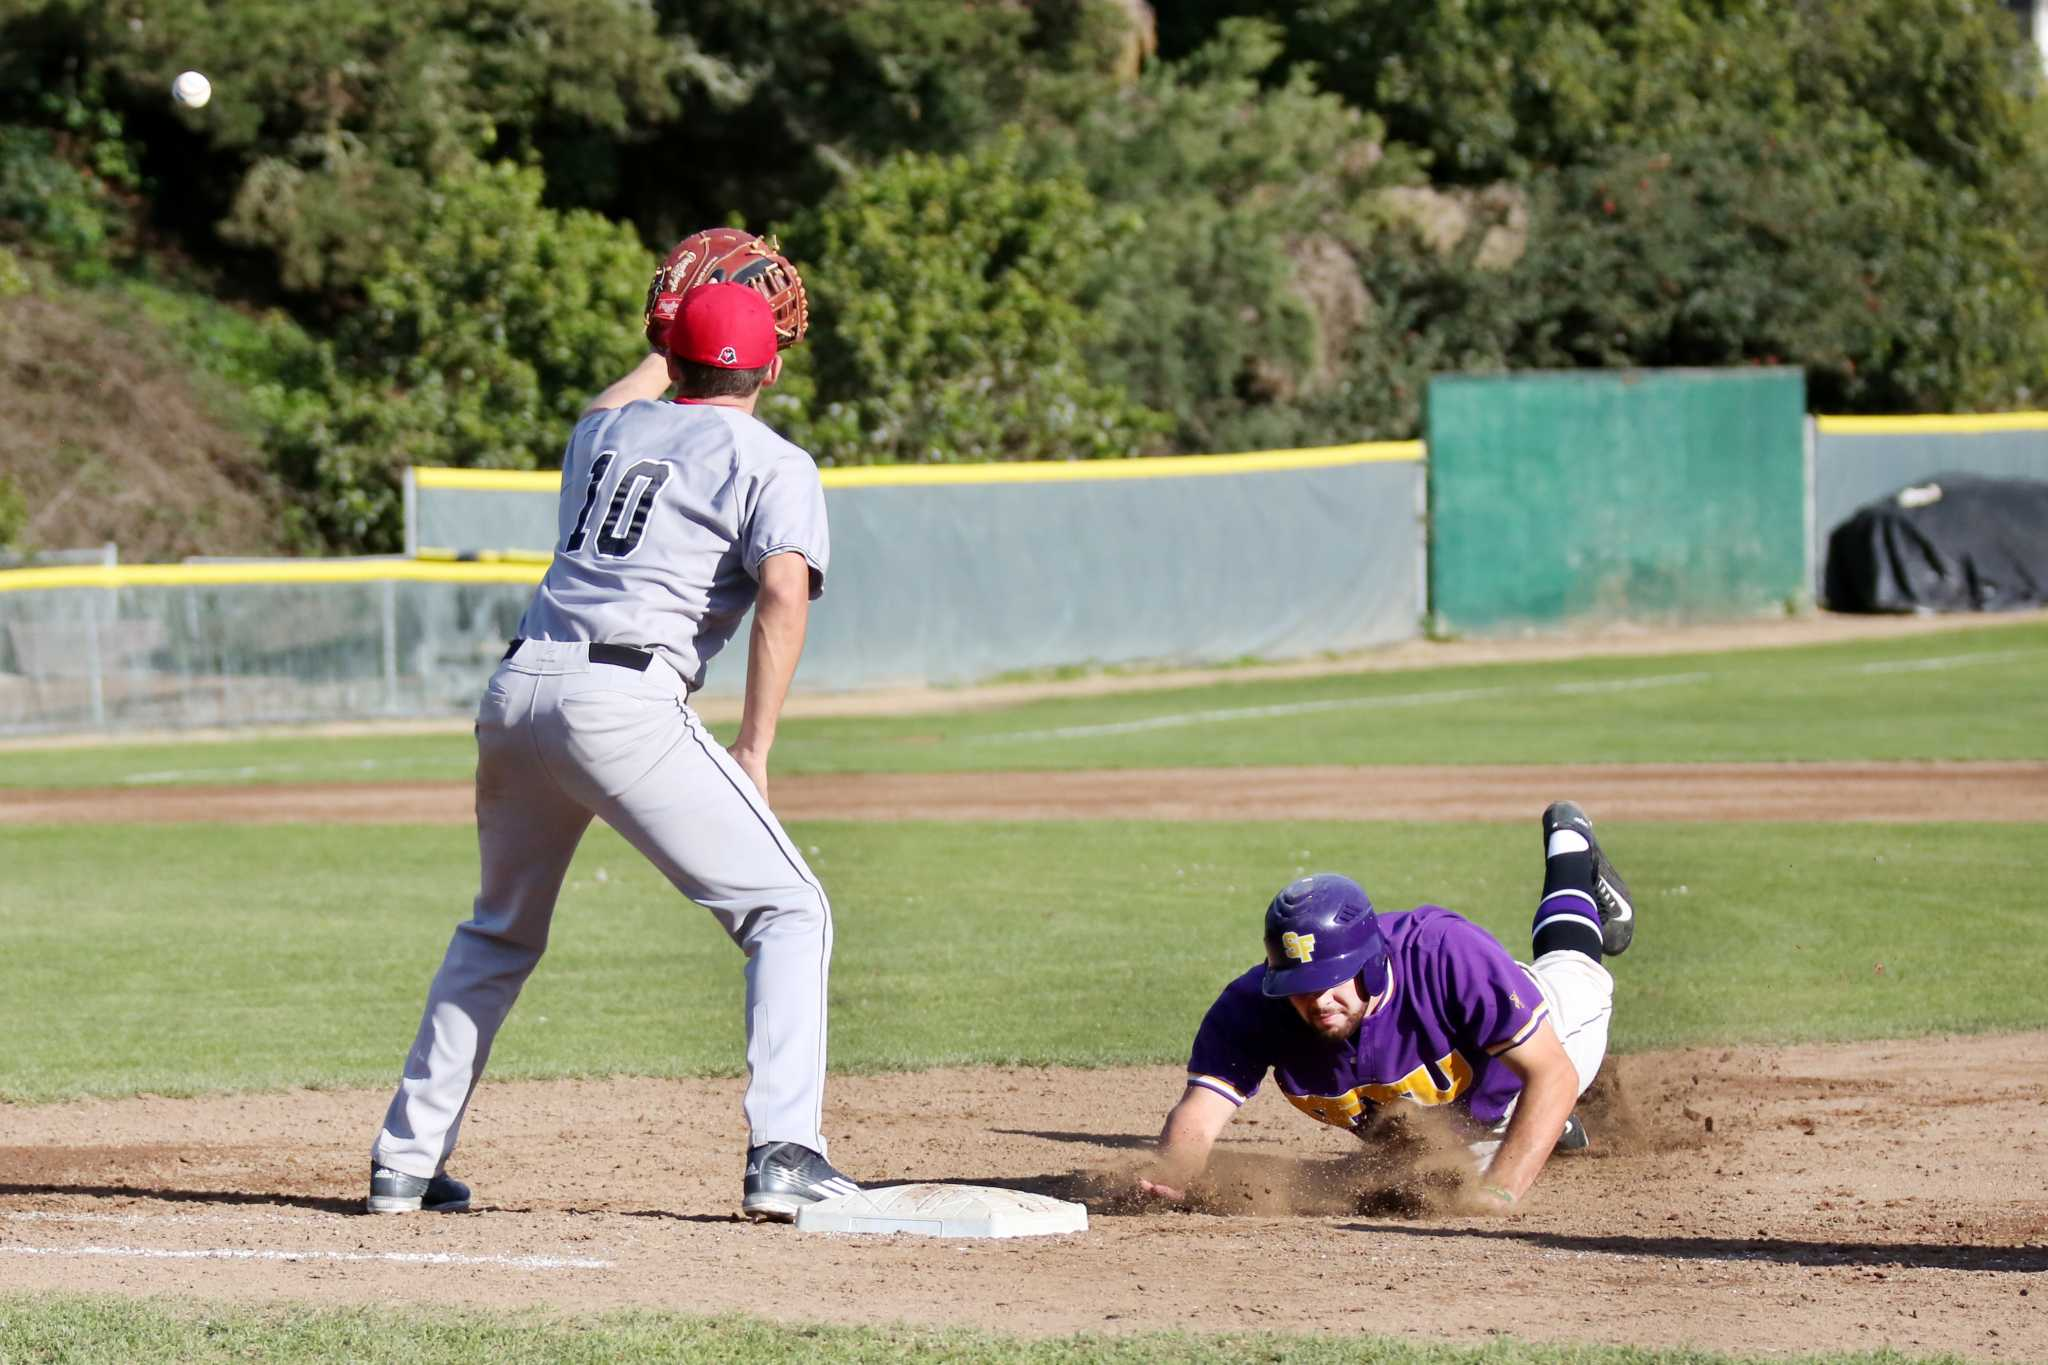 SF State Gator first baseman Ryan Burke (right) slides safely into first base as Holy Names University's first baseman Chris Gnos (left) waits for the ball during the Gators' second game of a doubleheader at Maloney Field at SF State on Saturday, Feb. 6, 2016. The Gators defeated the Hawks 4-3 in the second game of its doubleheader. (George Morin/Xpress)